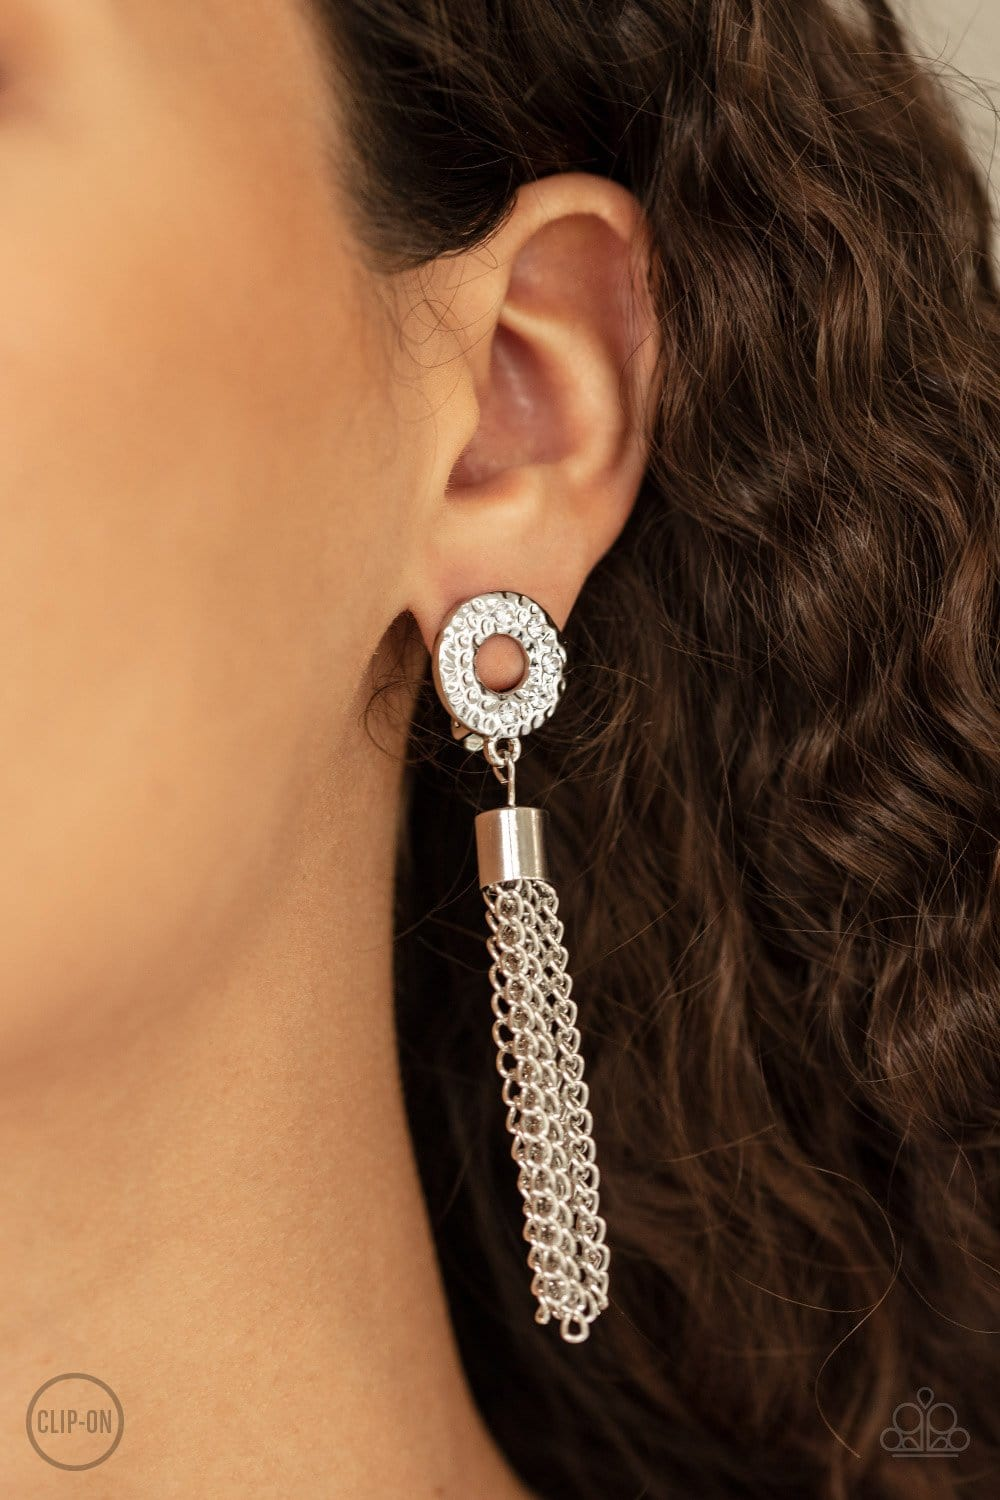 Paparazzi: Perfectly Prestigious - White Clip-On Earrings - Jewels N' Thingz Boutique